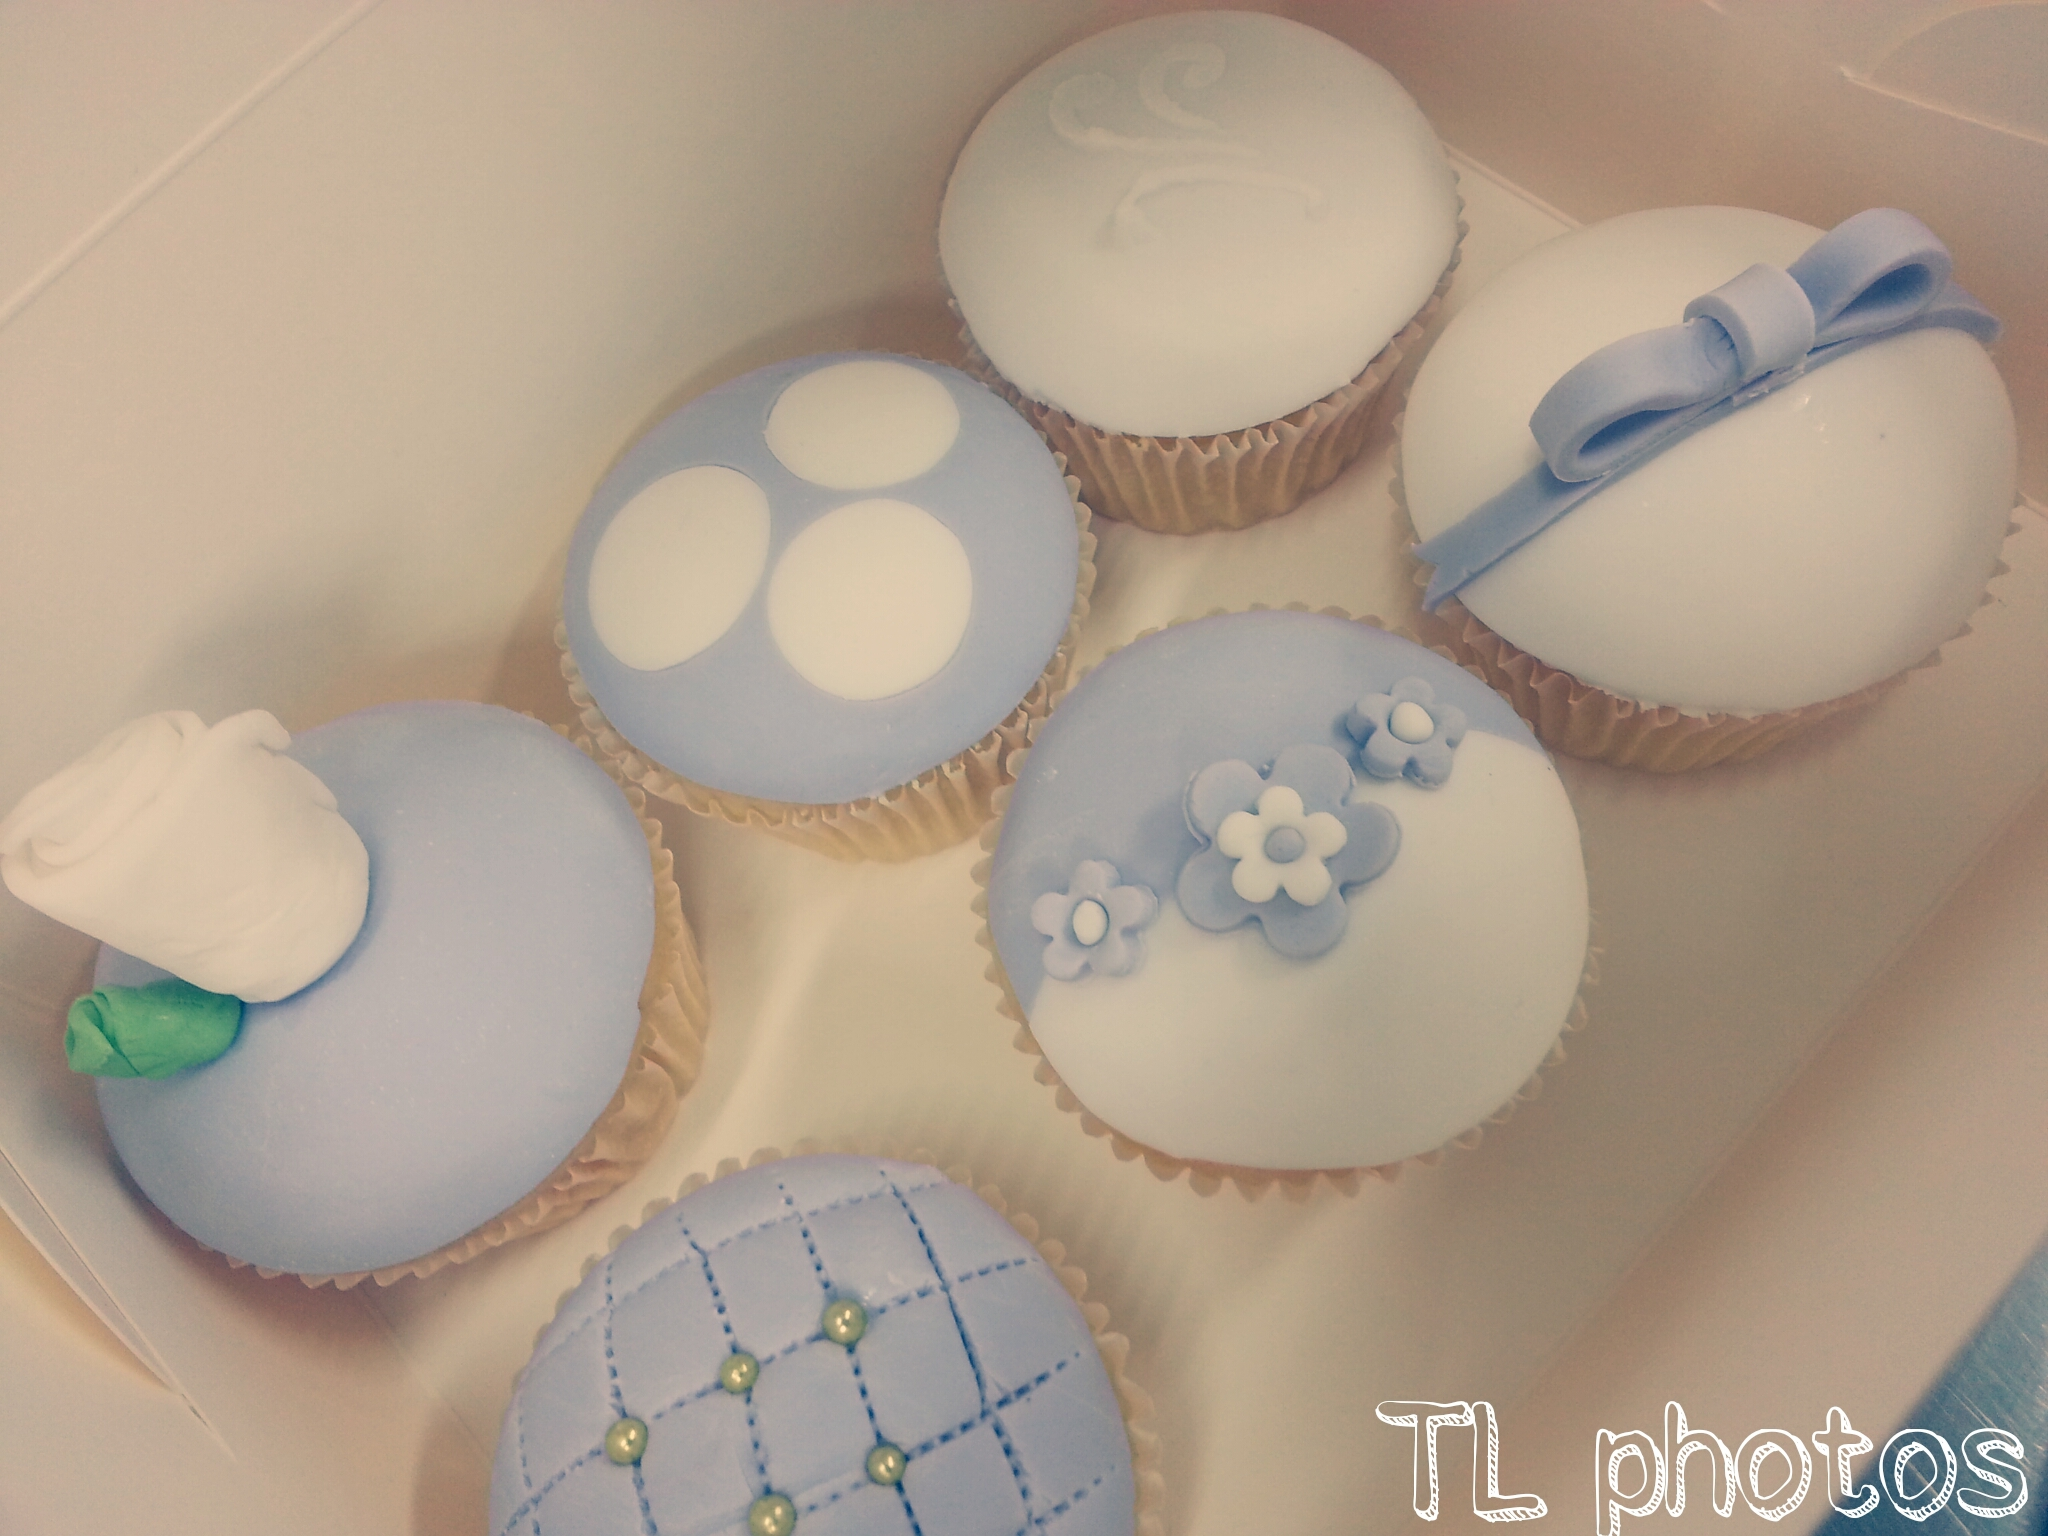 Cake Decorating Classes Central West Nsw : Cake Decorating Courses at Planet Cake - Sydney